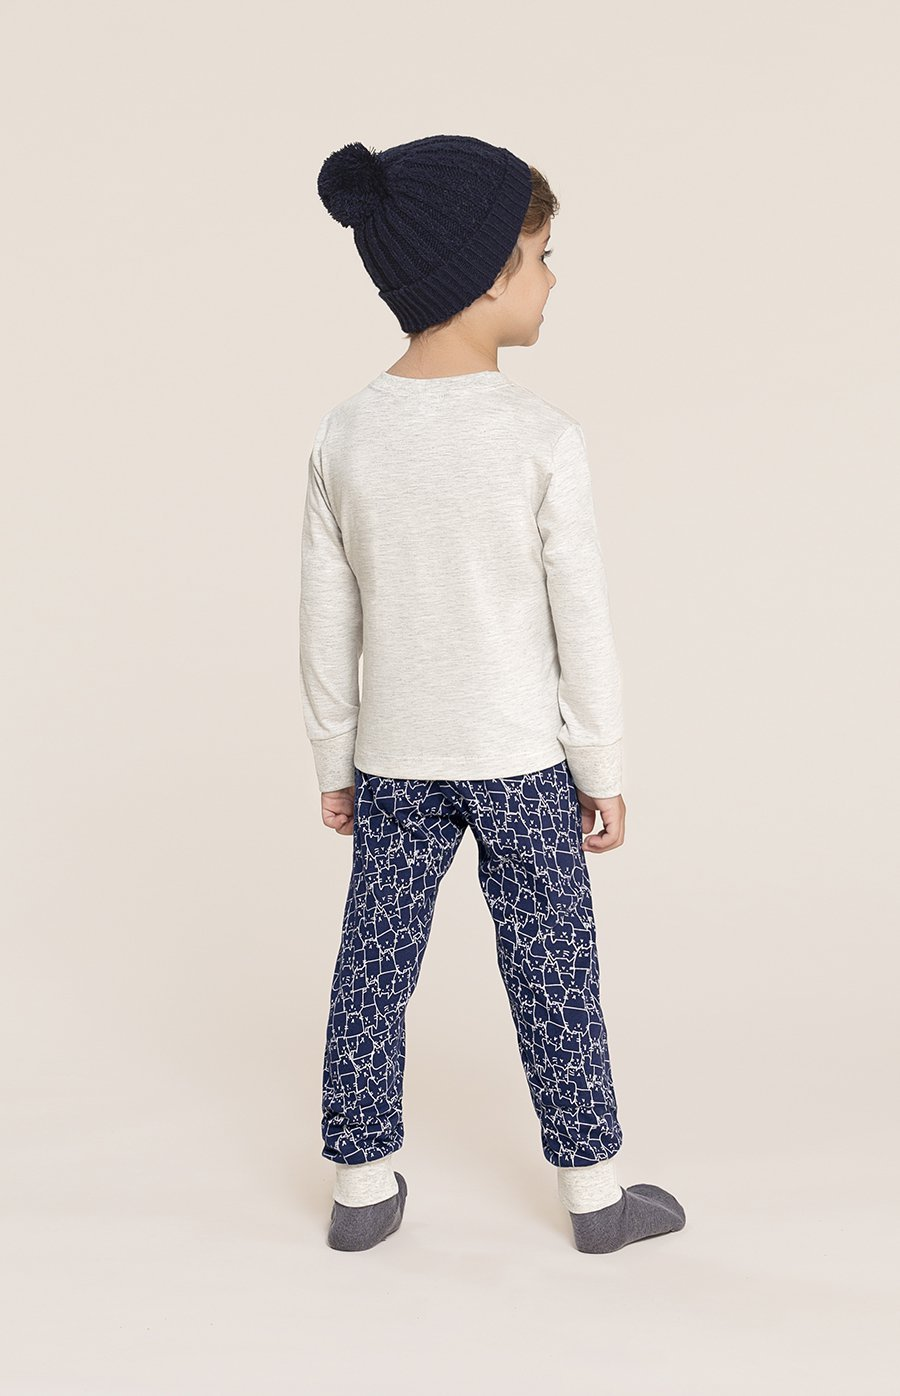 PROMO INVERNO OUTLET Pijama Baby 1/2 Malha Cats MDS